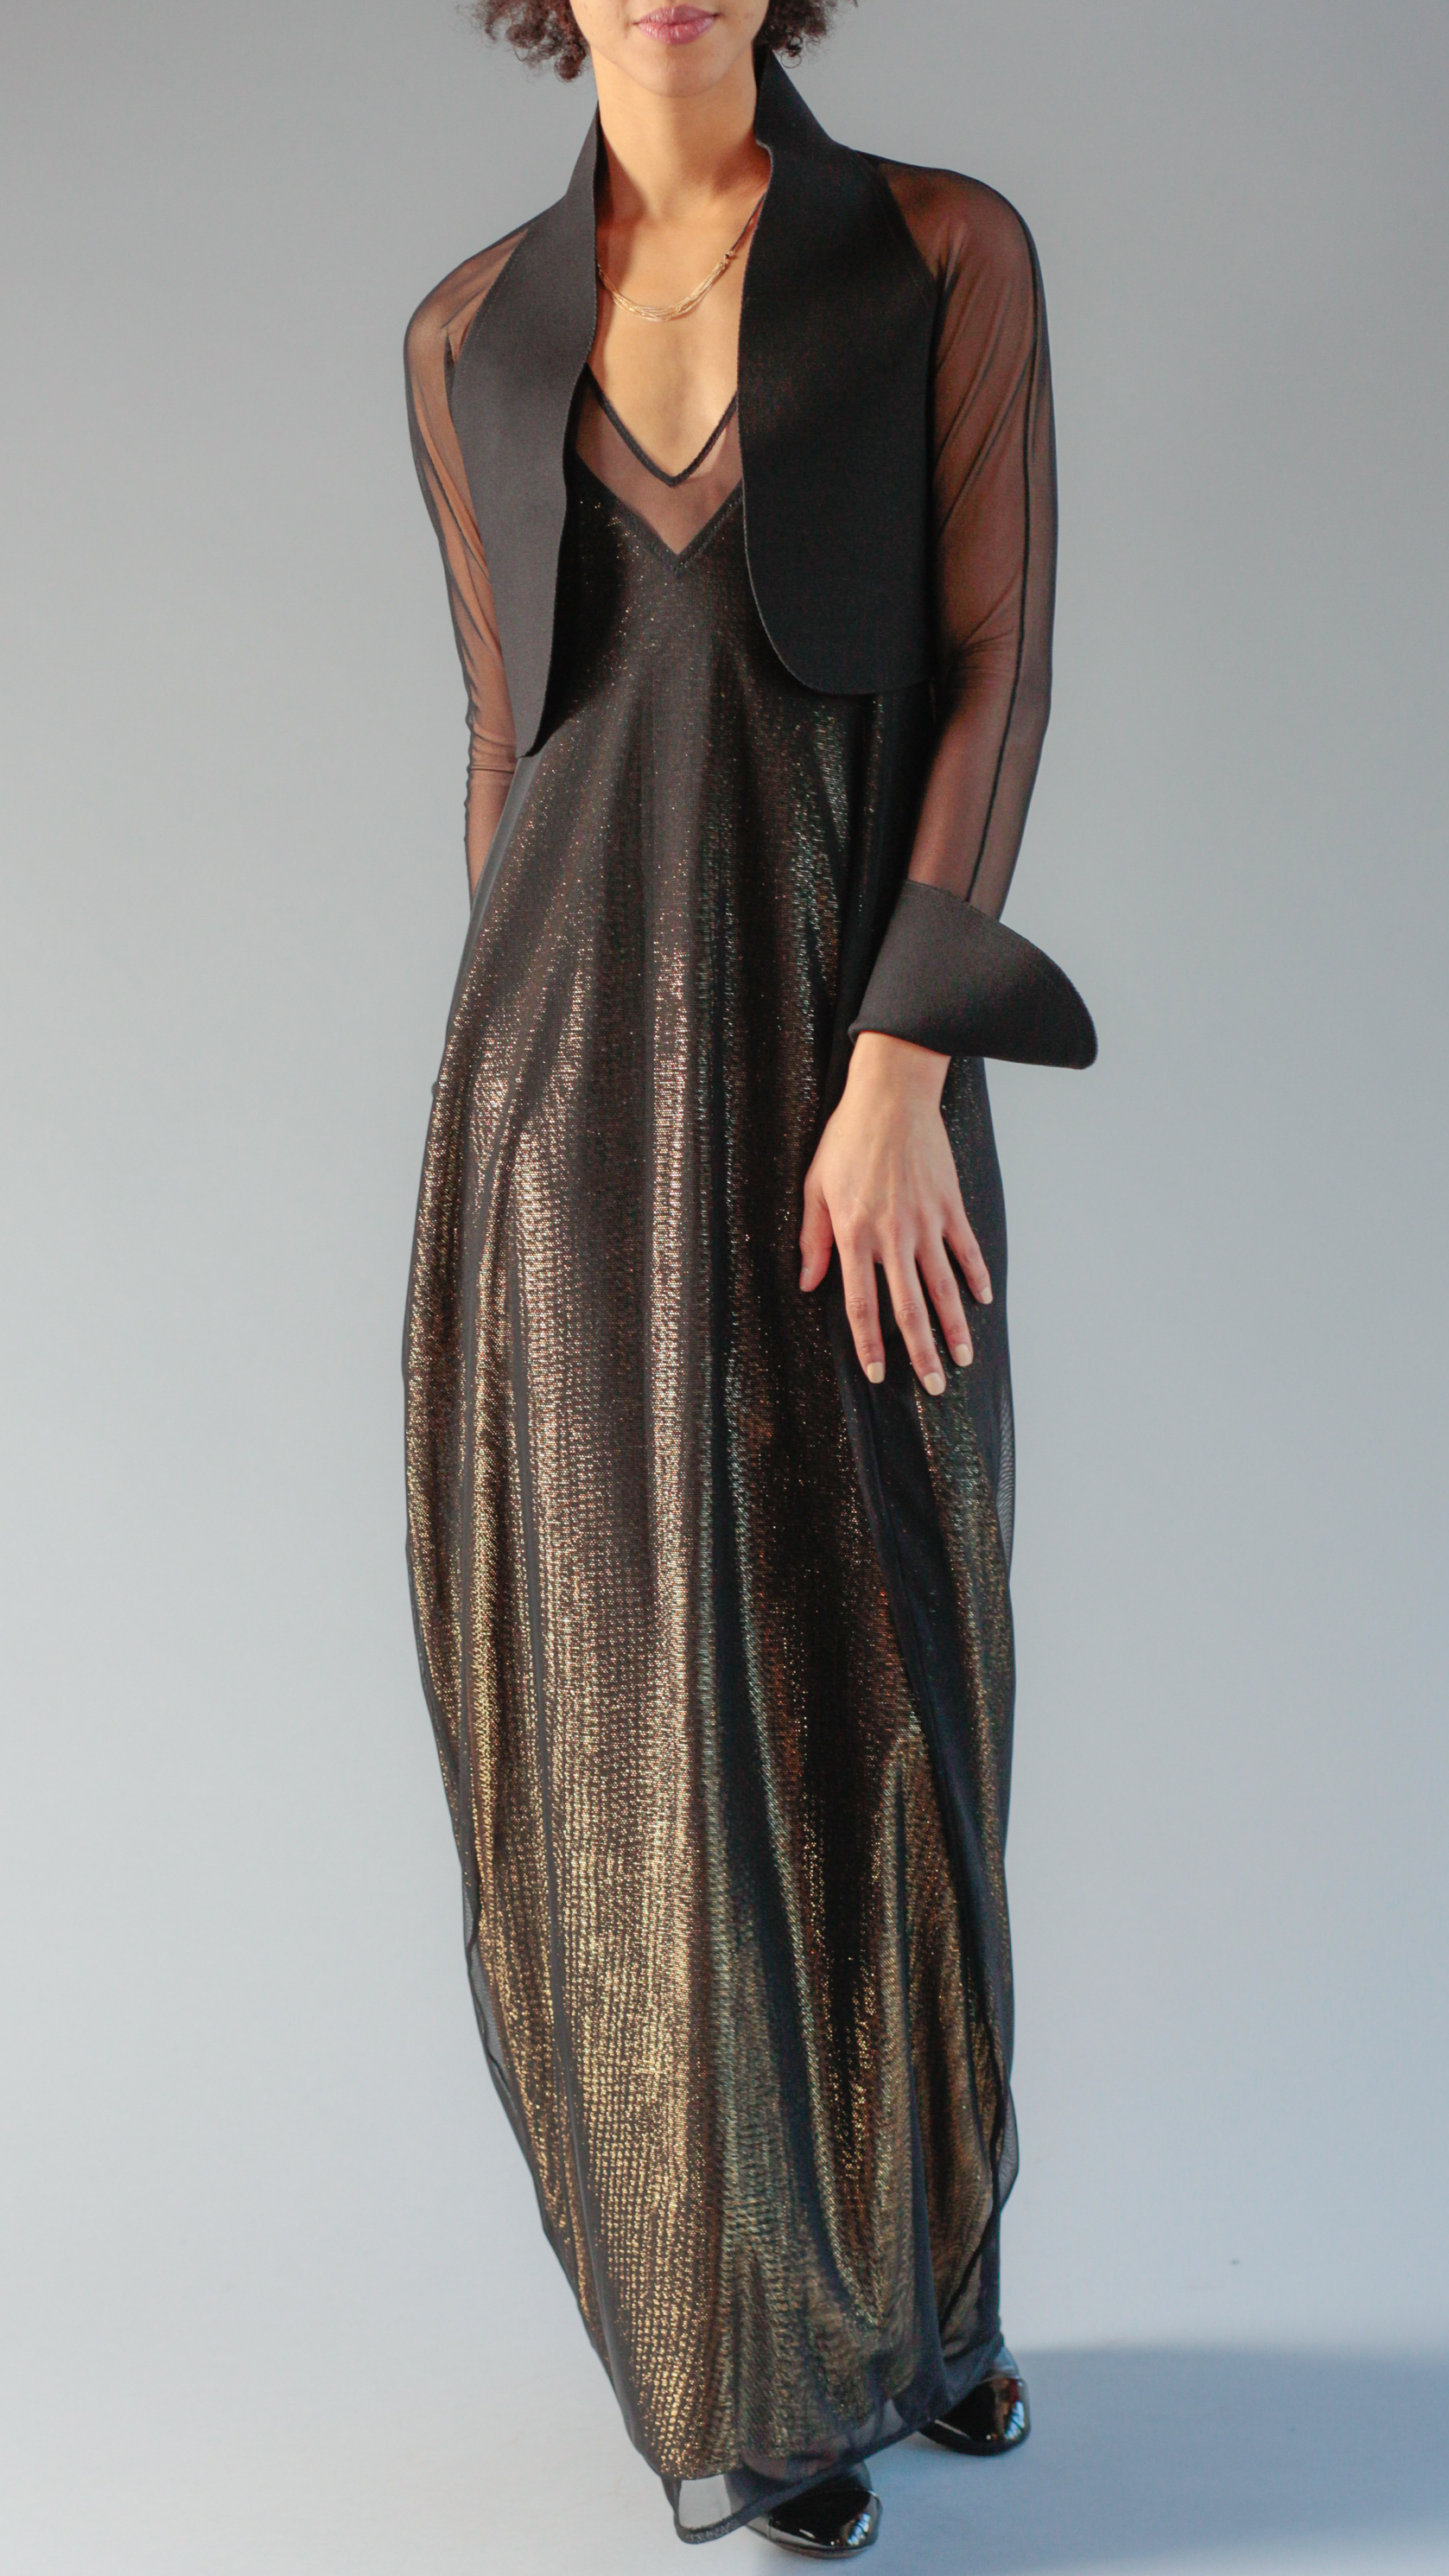 Another glittery statement piece, this floor-length black and gold glittered dress, is certainly a dress you wear to impress, and you have to be willing to invest if you want to go with this option. $1500 (Image: Dayna Smith/Courtesy Betsy Fisher)